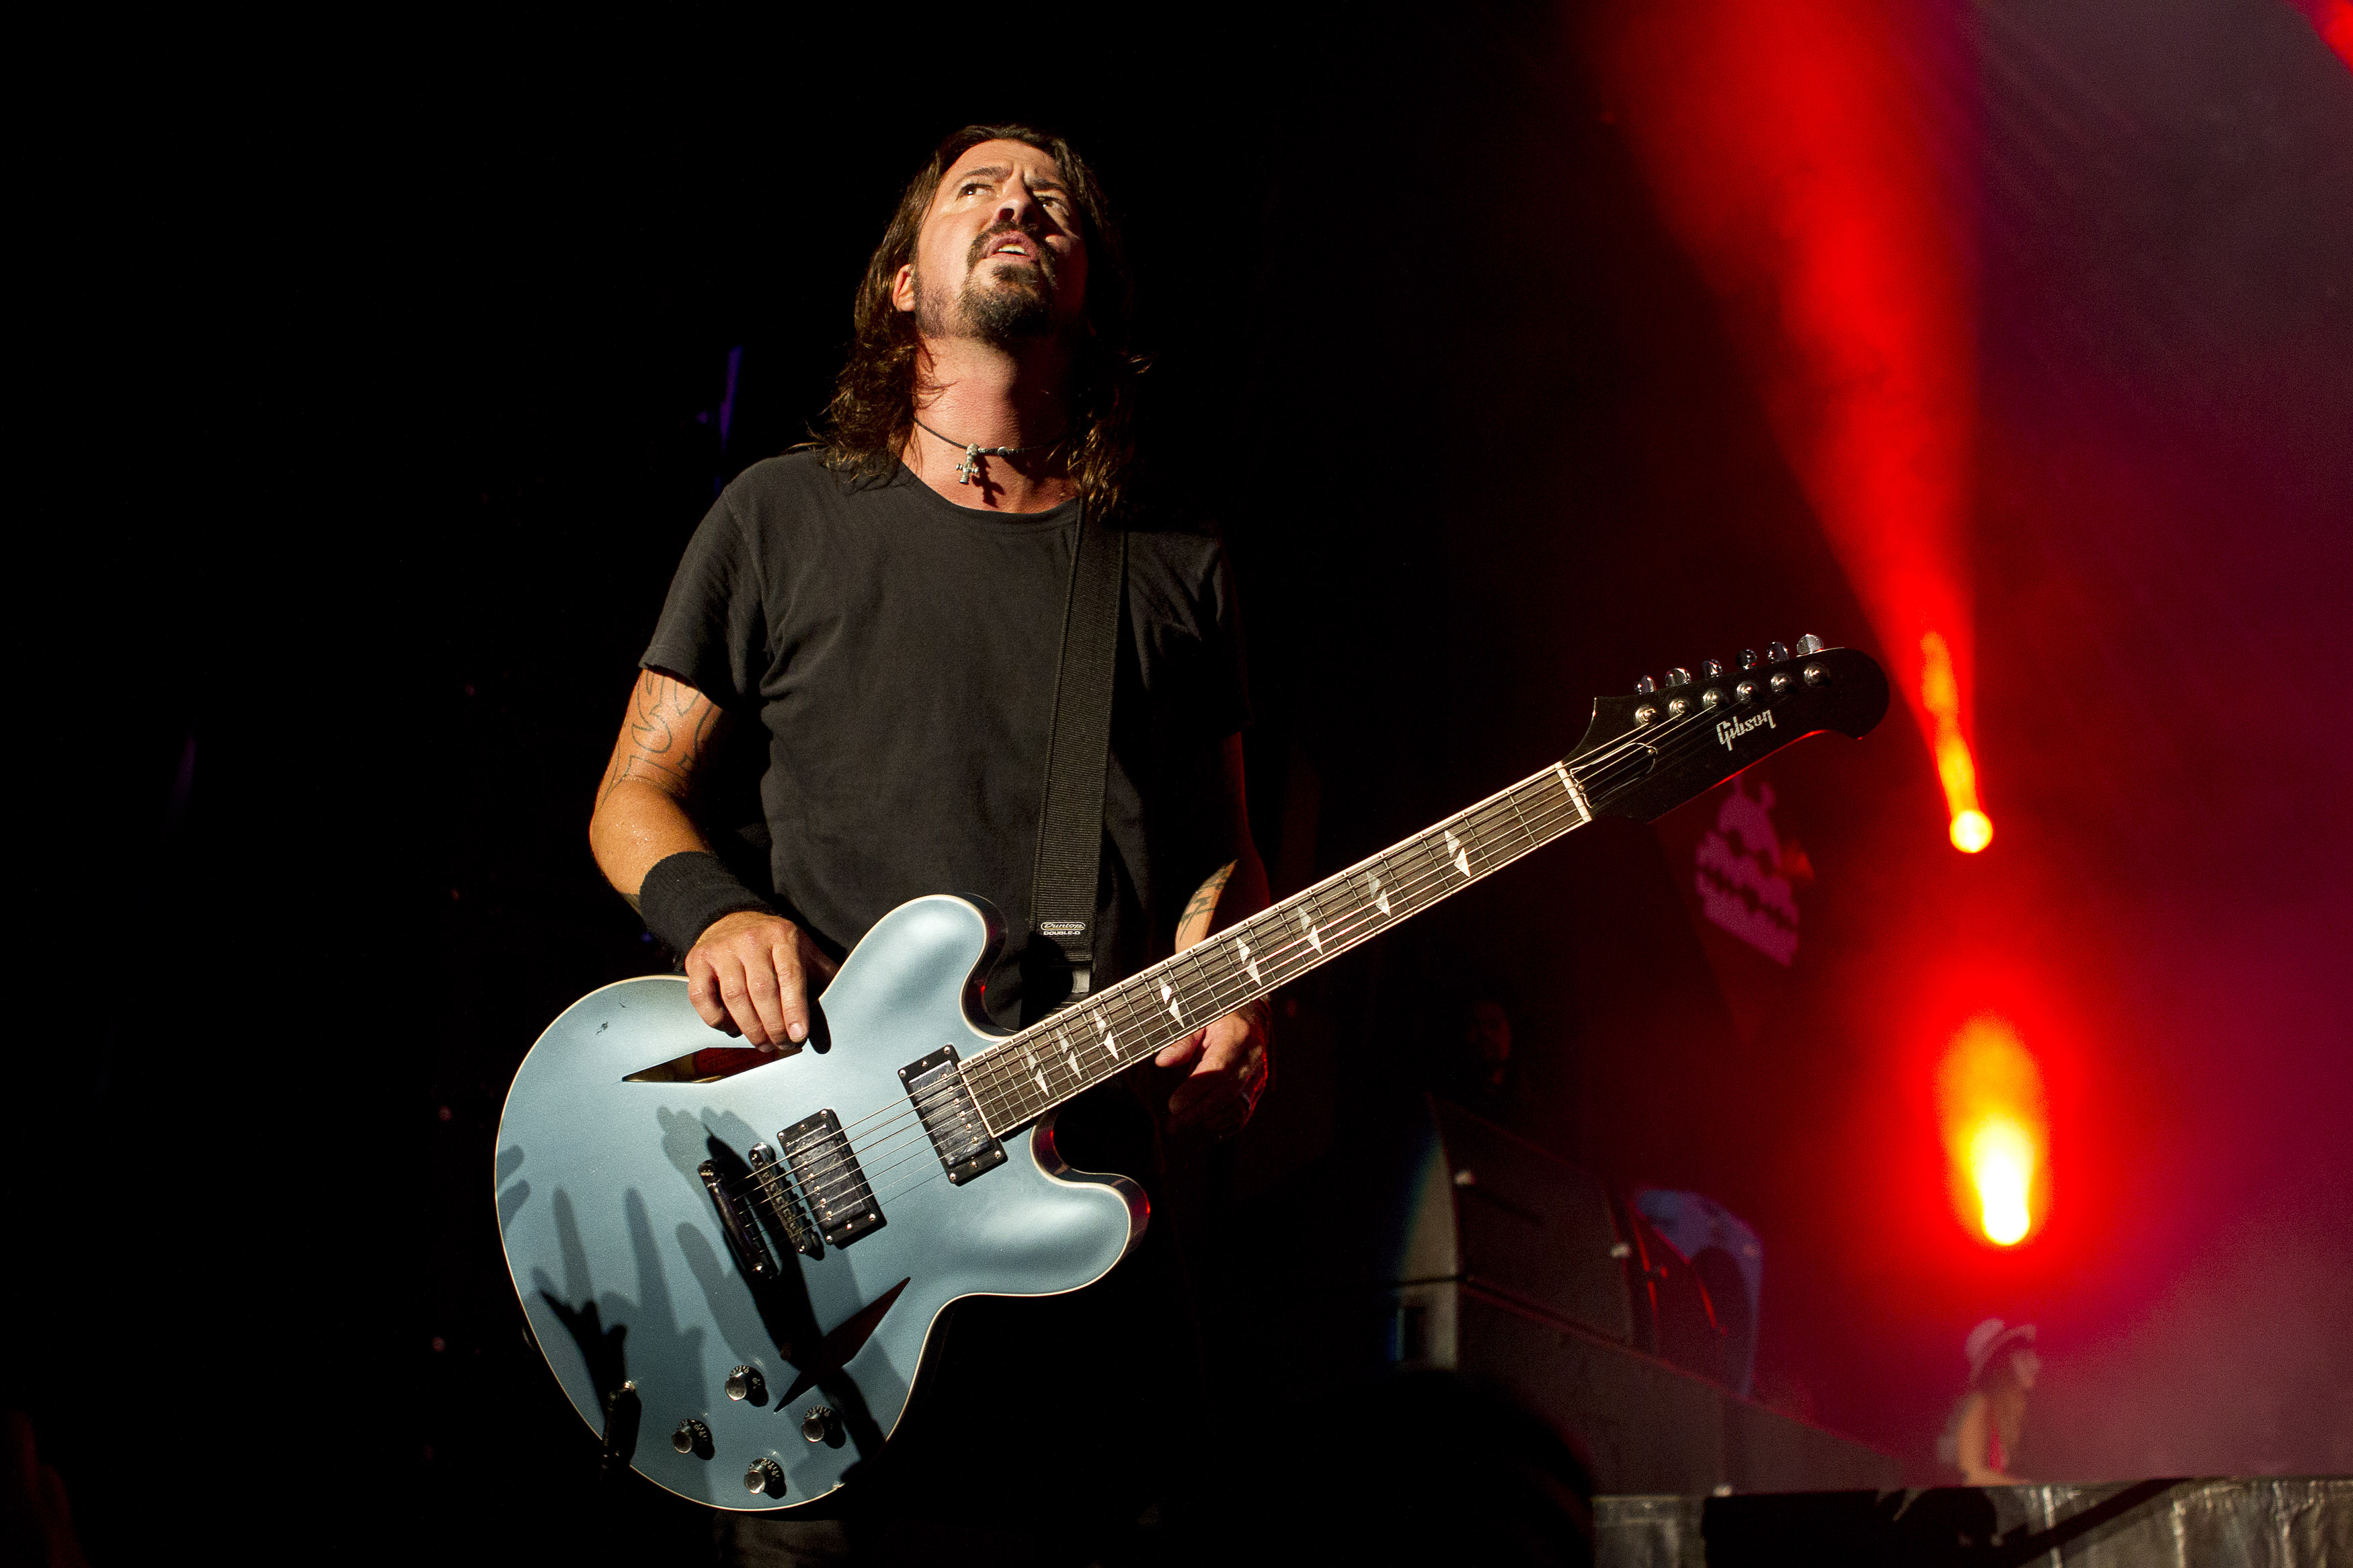 Dave Grohl of Foo Fighters performs on stage, Lowlands festival, Biddinghuizen, Netherlands, 19 August 2012. (Photo by Paul B